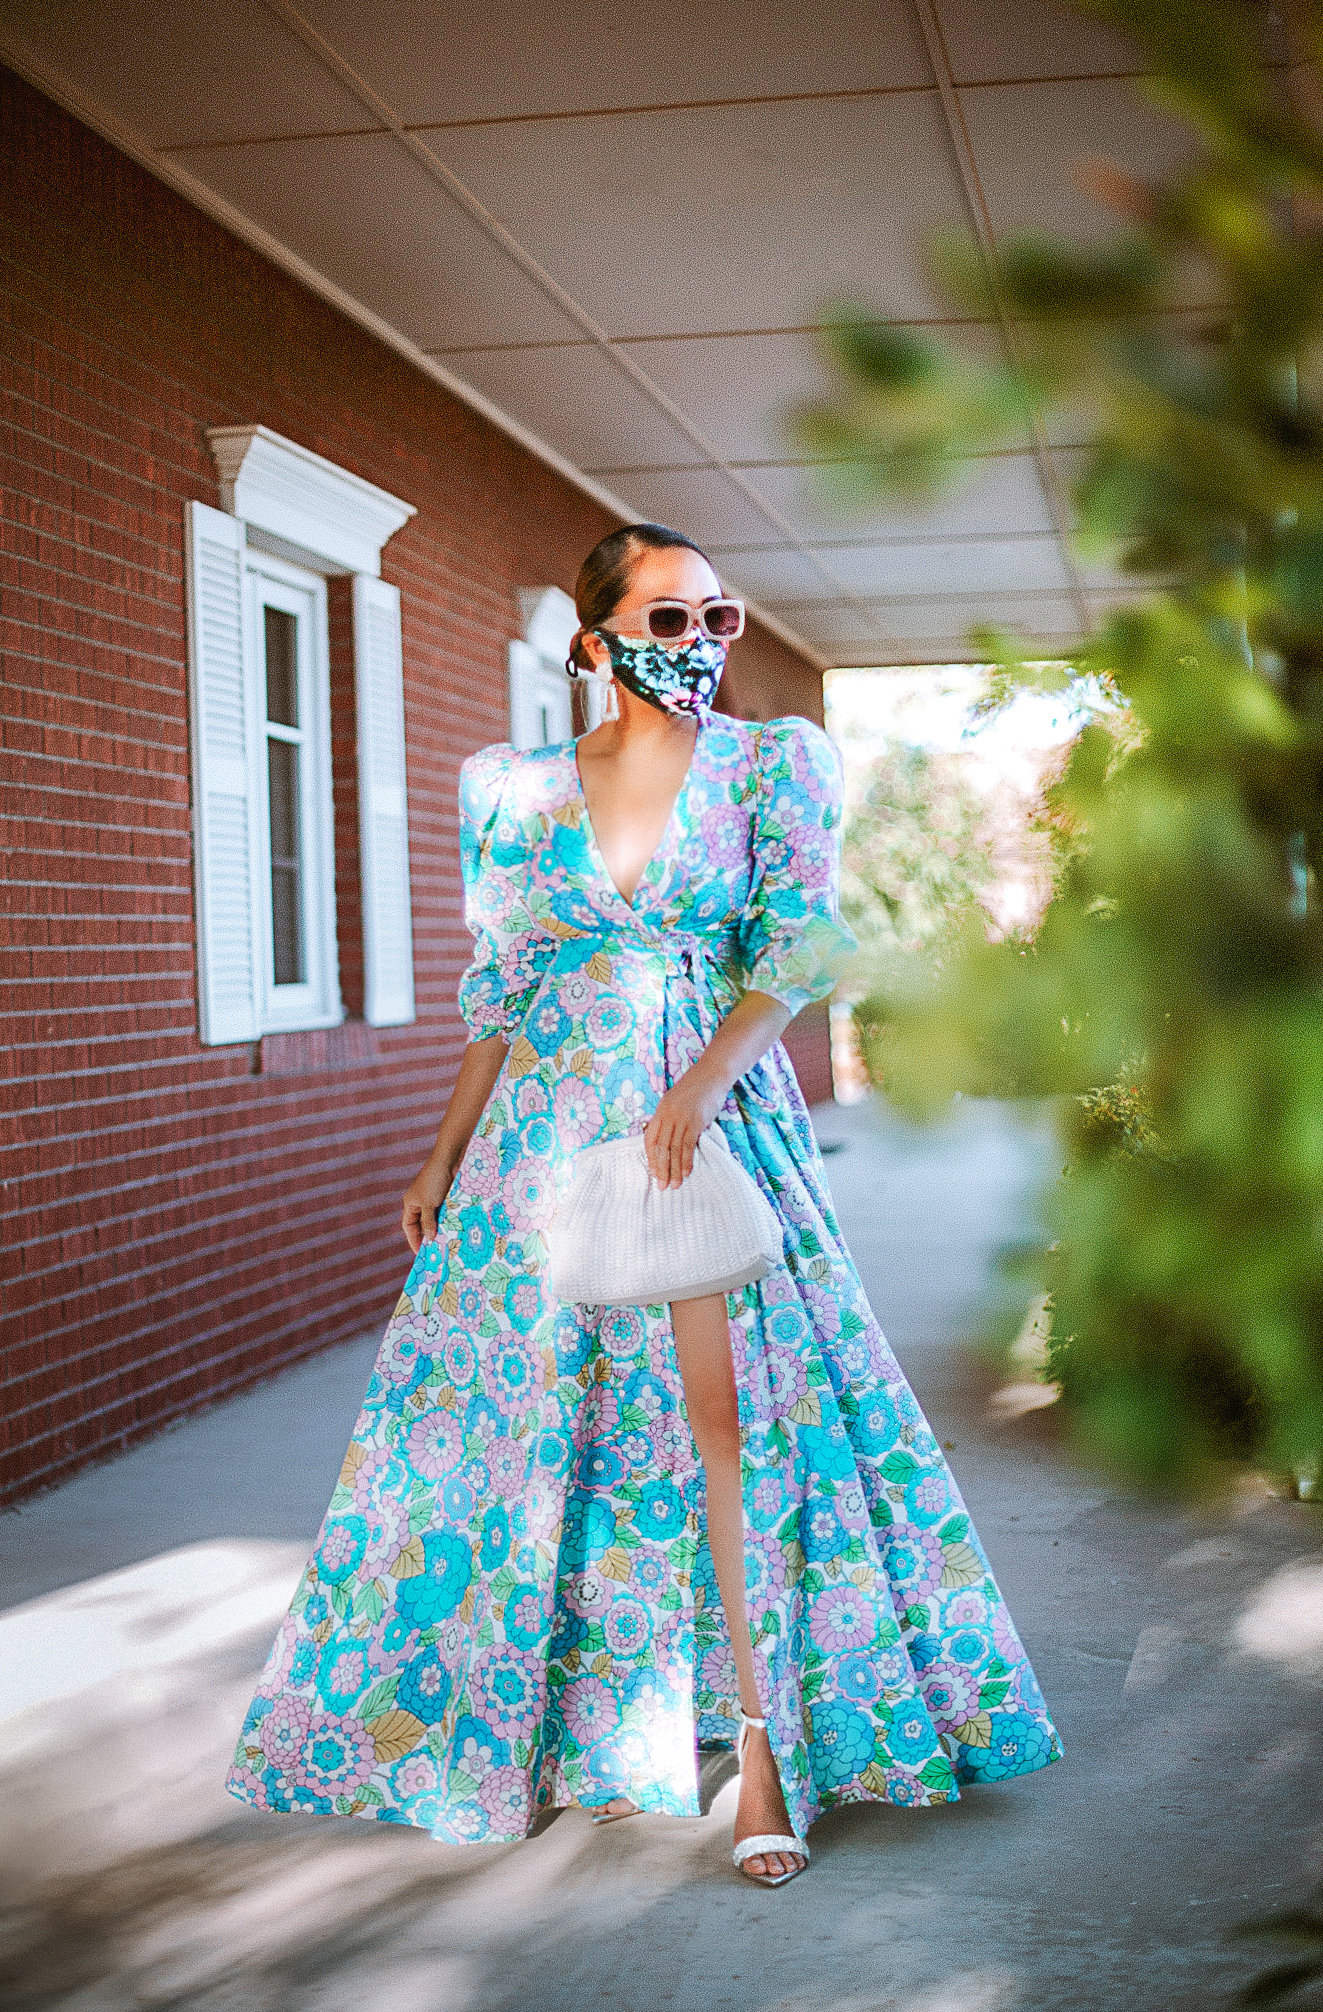 Flower Power: 3 Creative Ways to adopt the floral trend